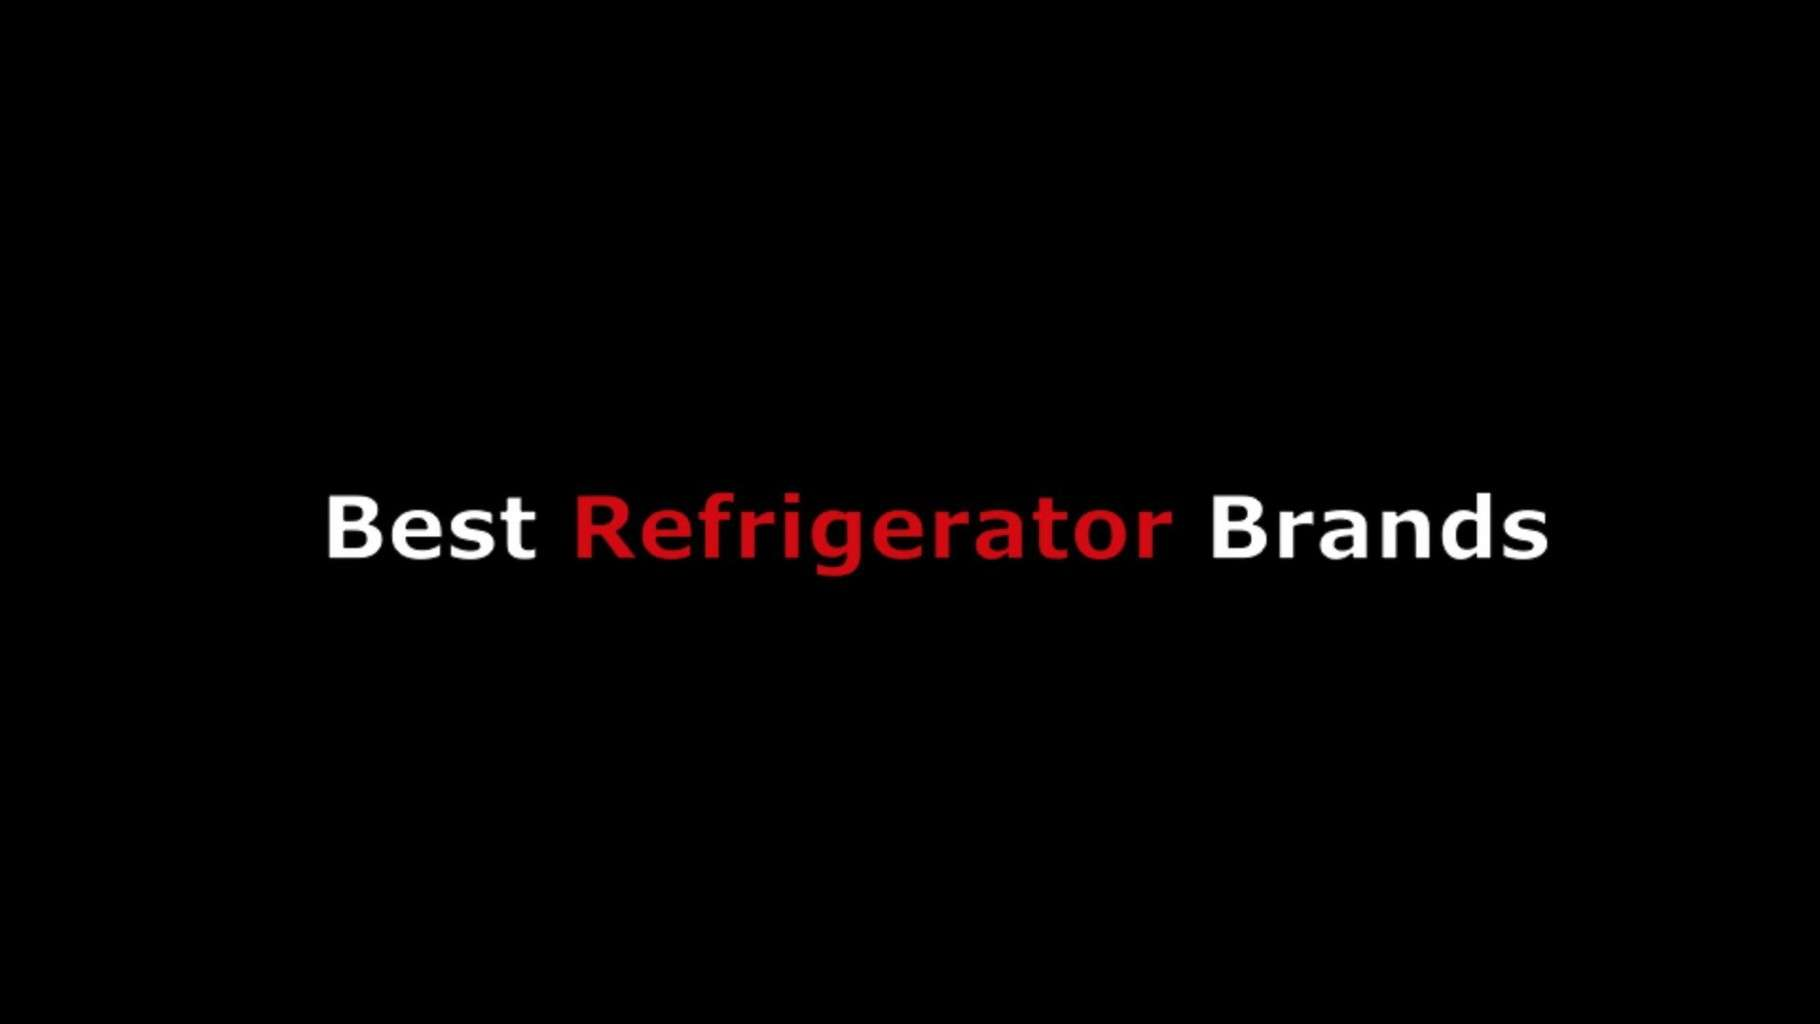 best refrigerator brands in india for low consumptions